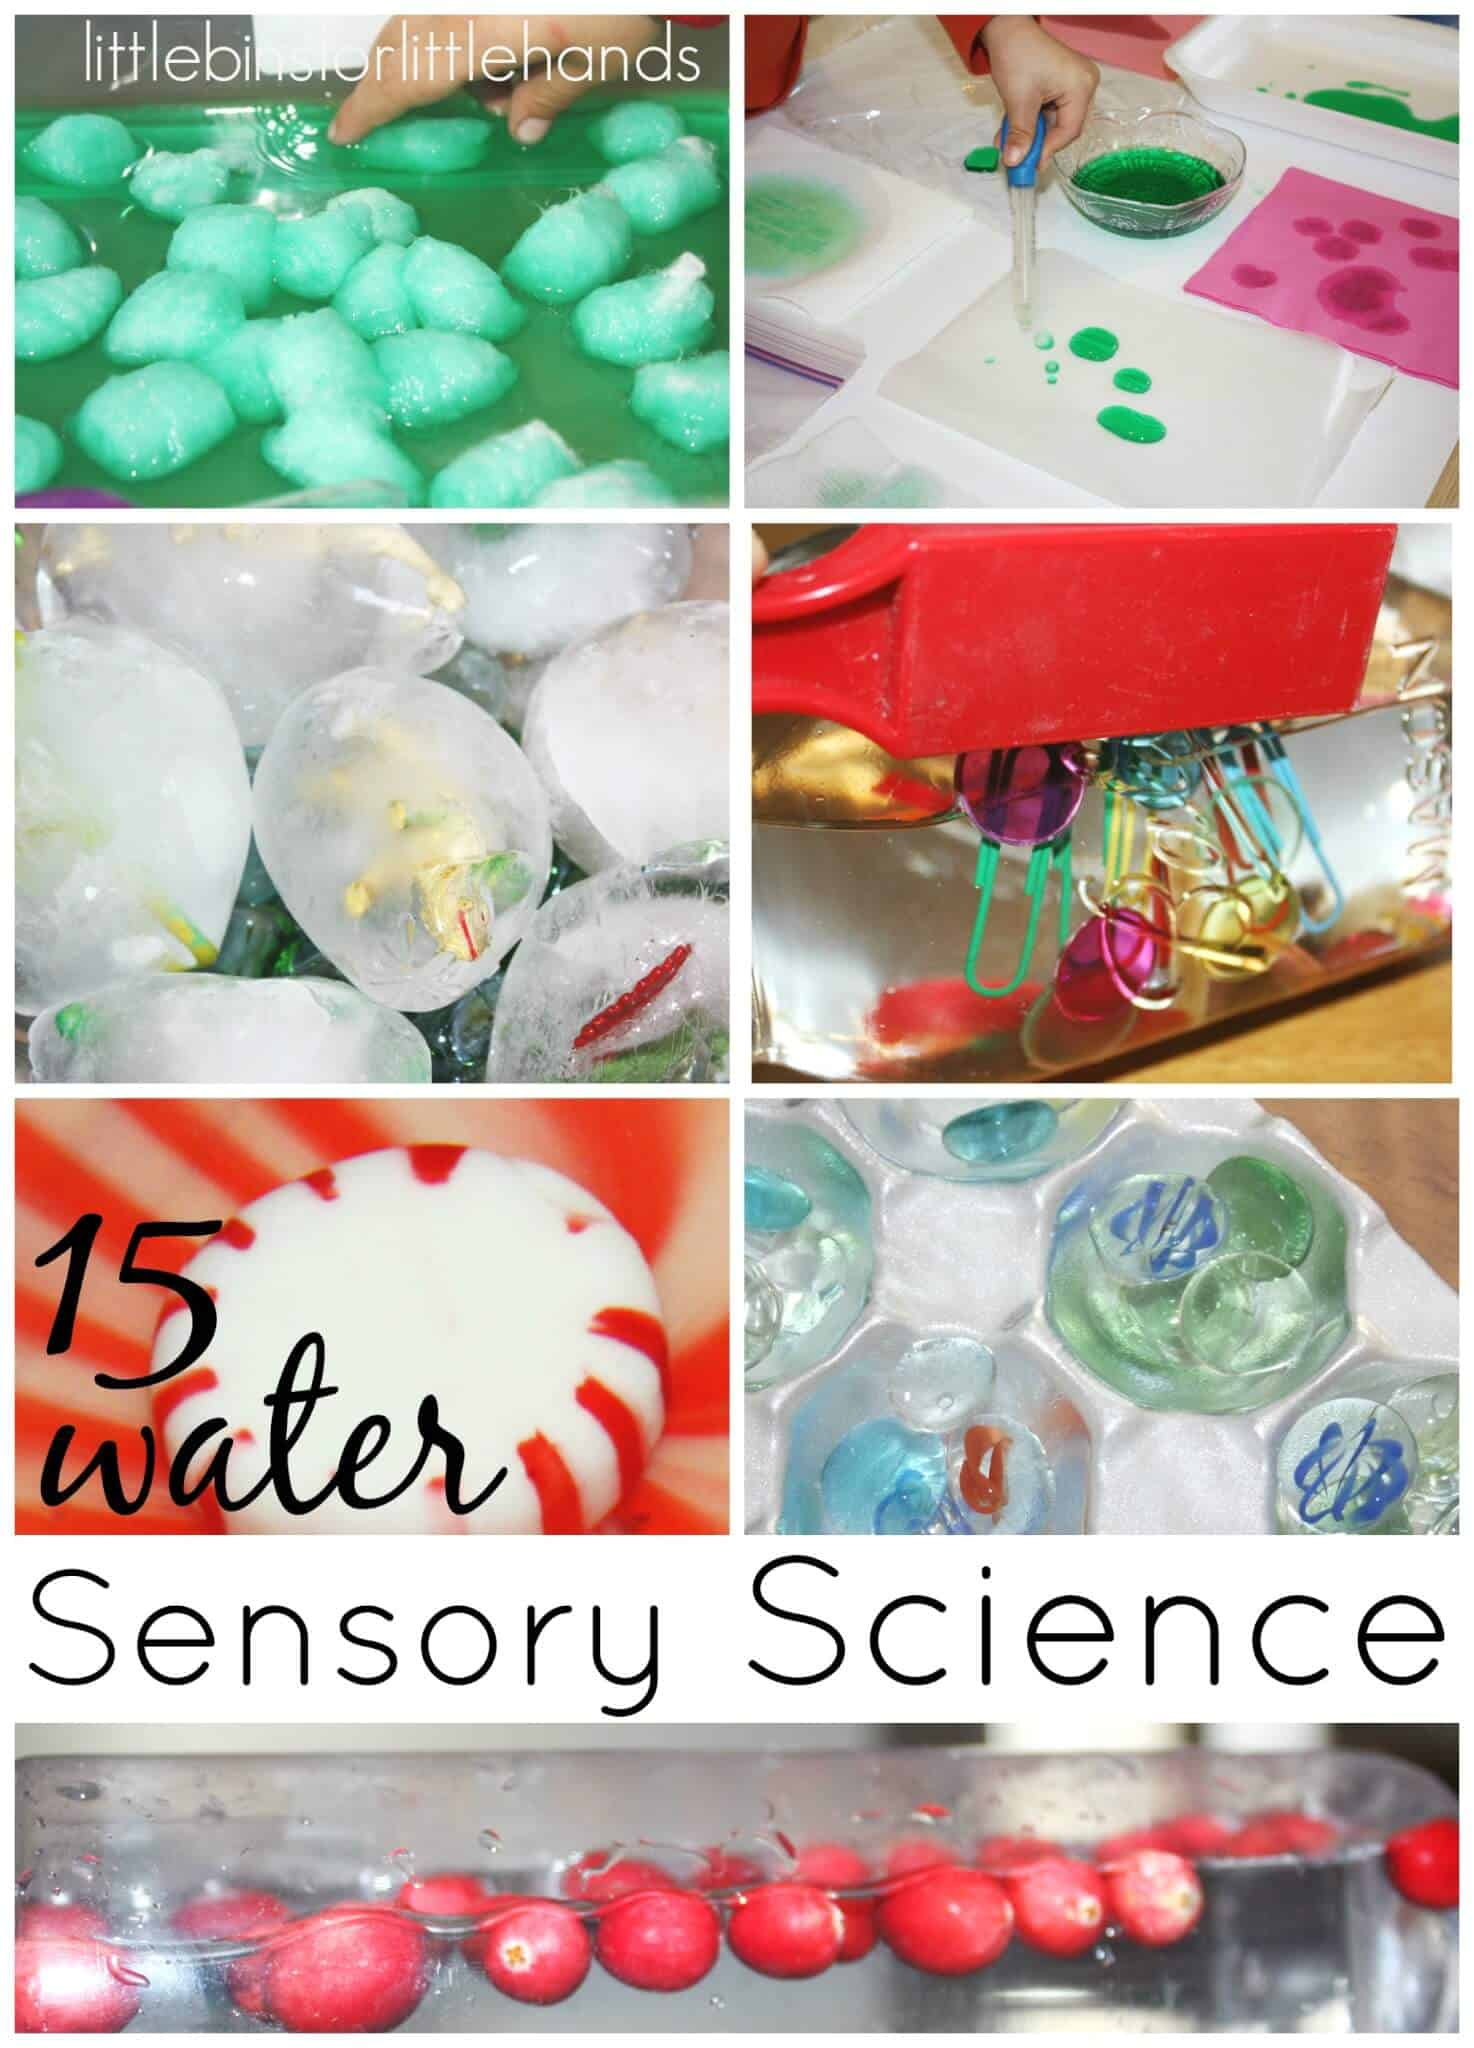 sensory science activities water play learning hands preschool preschoolers children fun experiments littlebinsforlittlehands projects simple experiment stem early kid motor